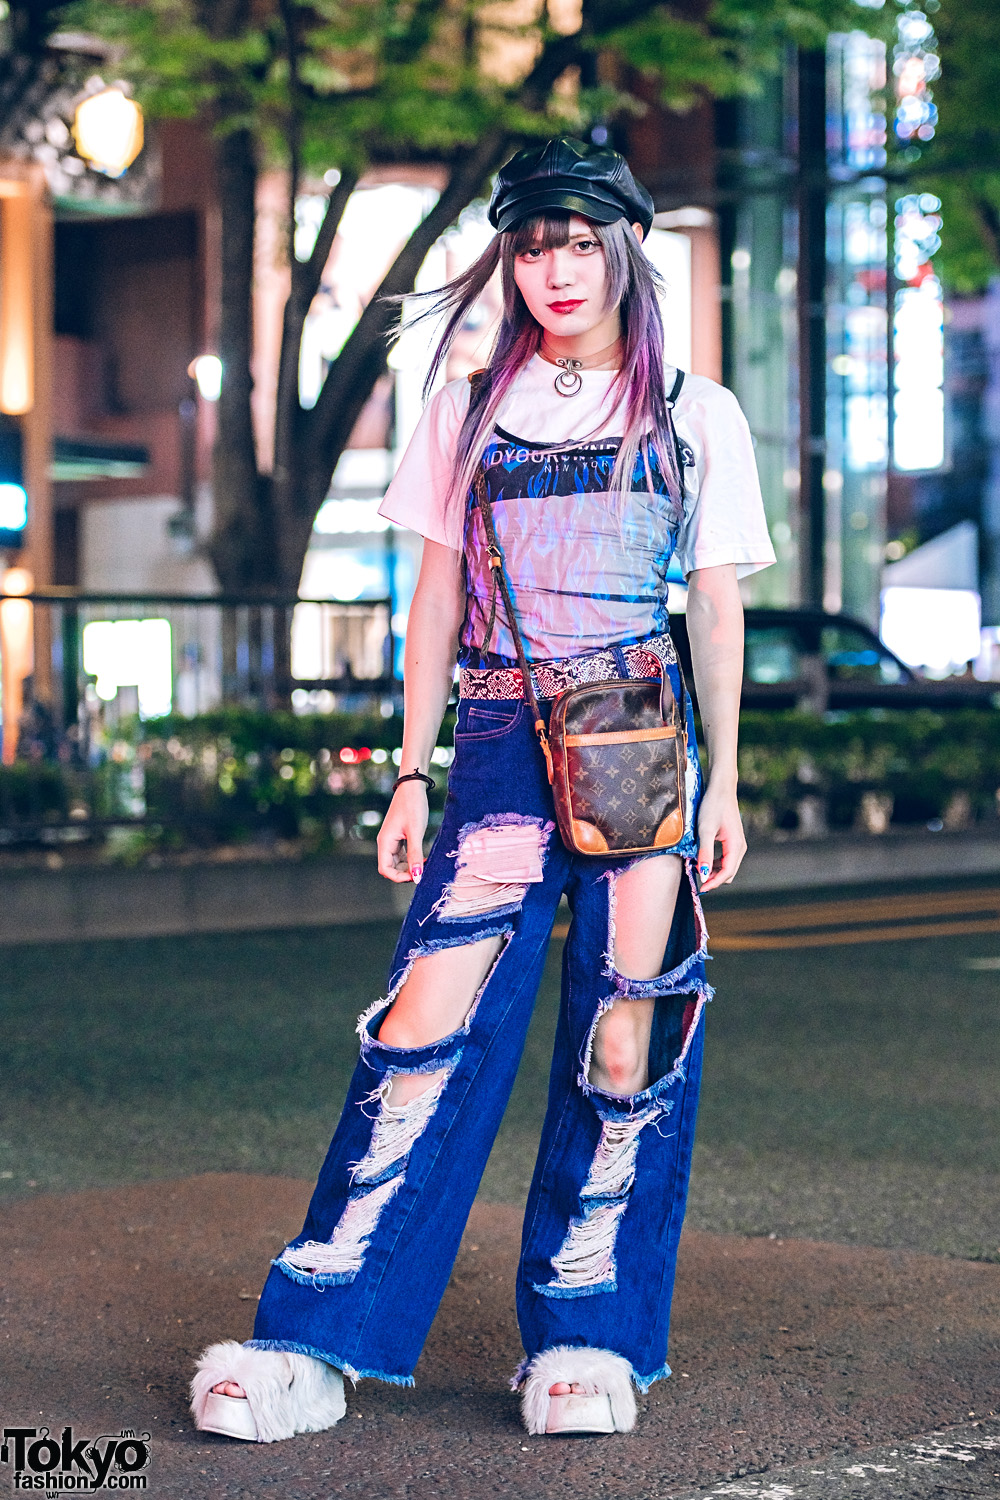 Ripped Jeans & Faux Fur Shoes Harajuku Street Style w/ M.Y.O.B., Current Mood, Fig & Viper, Louis Vuitton, Jeffrey Campbell & WEGO